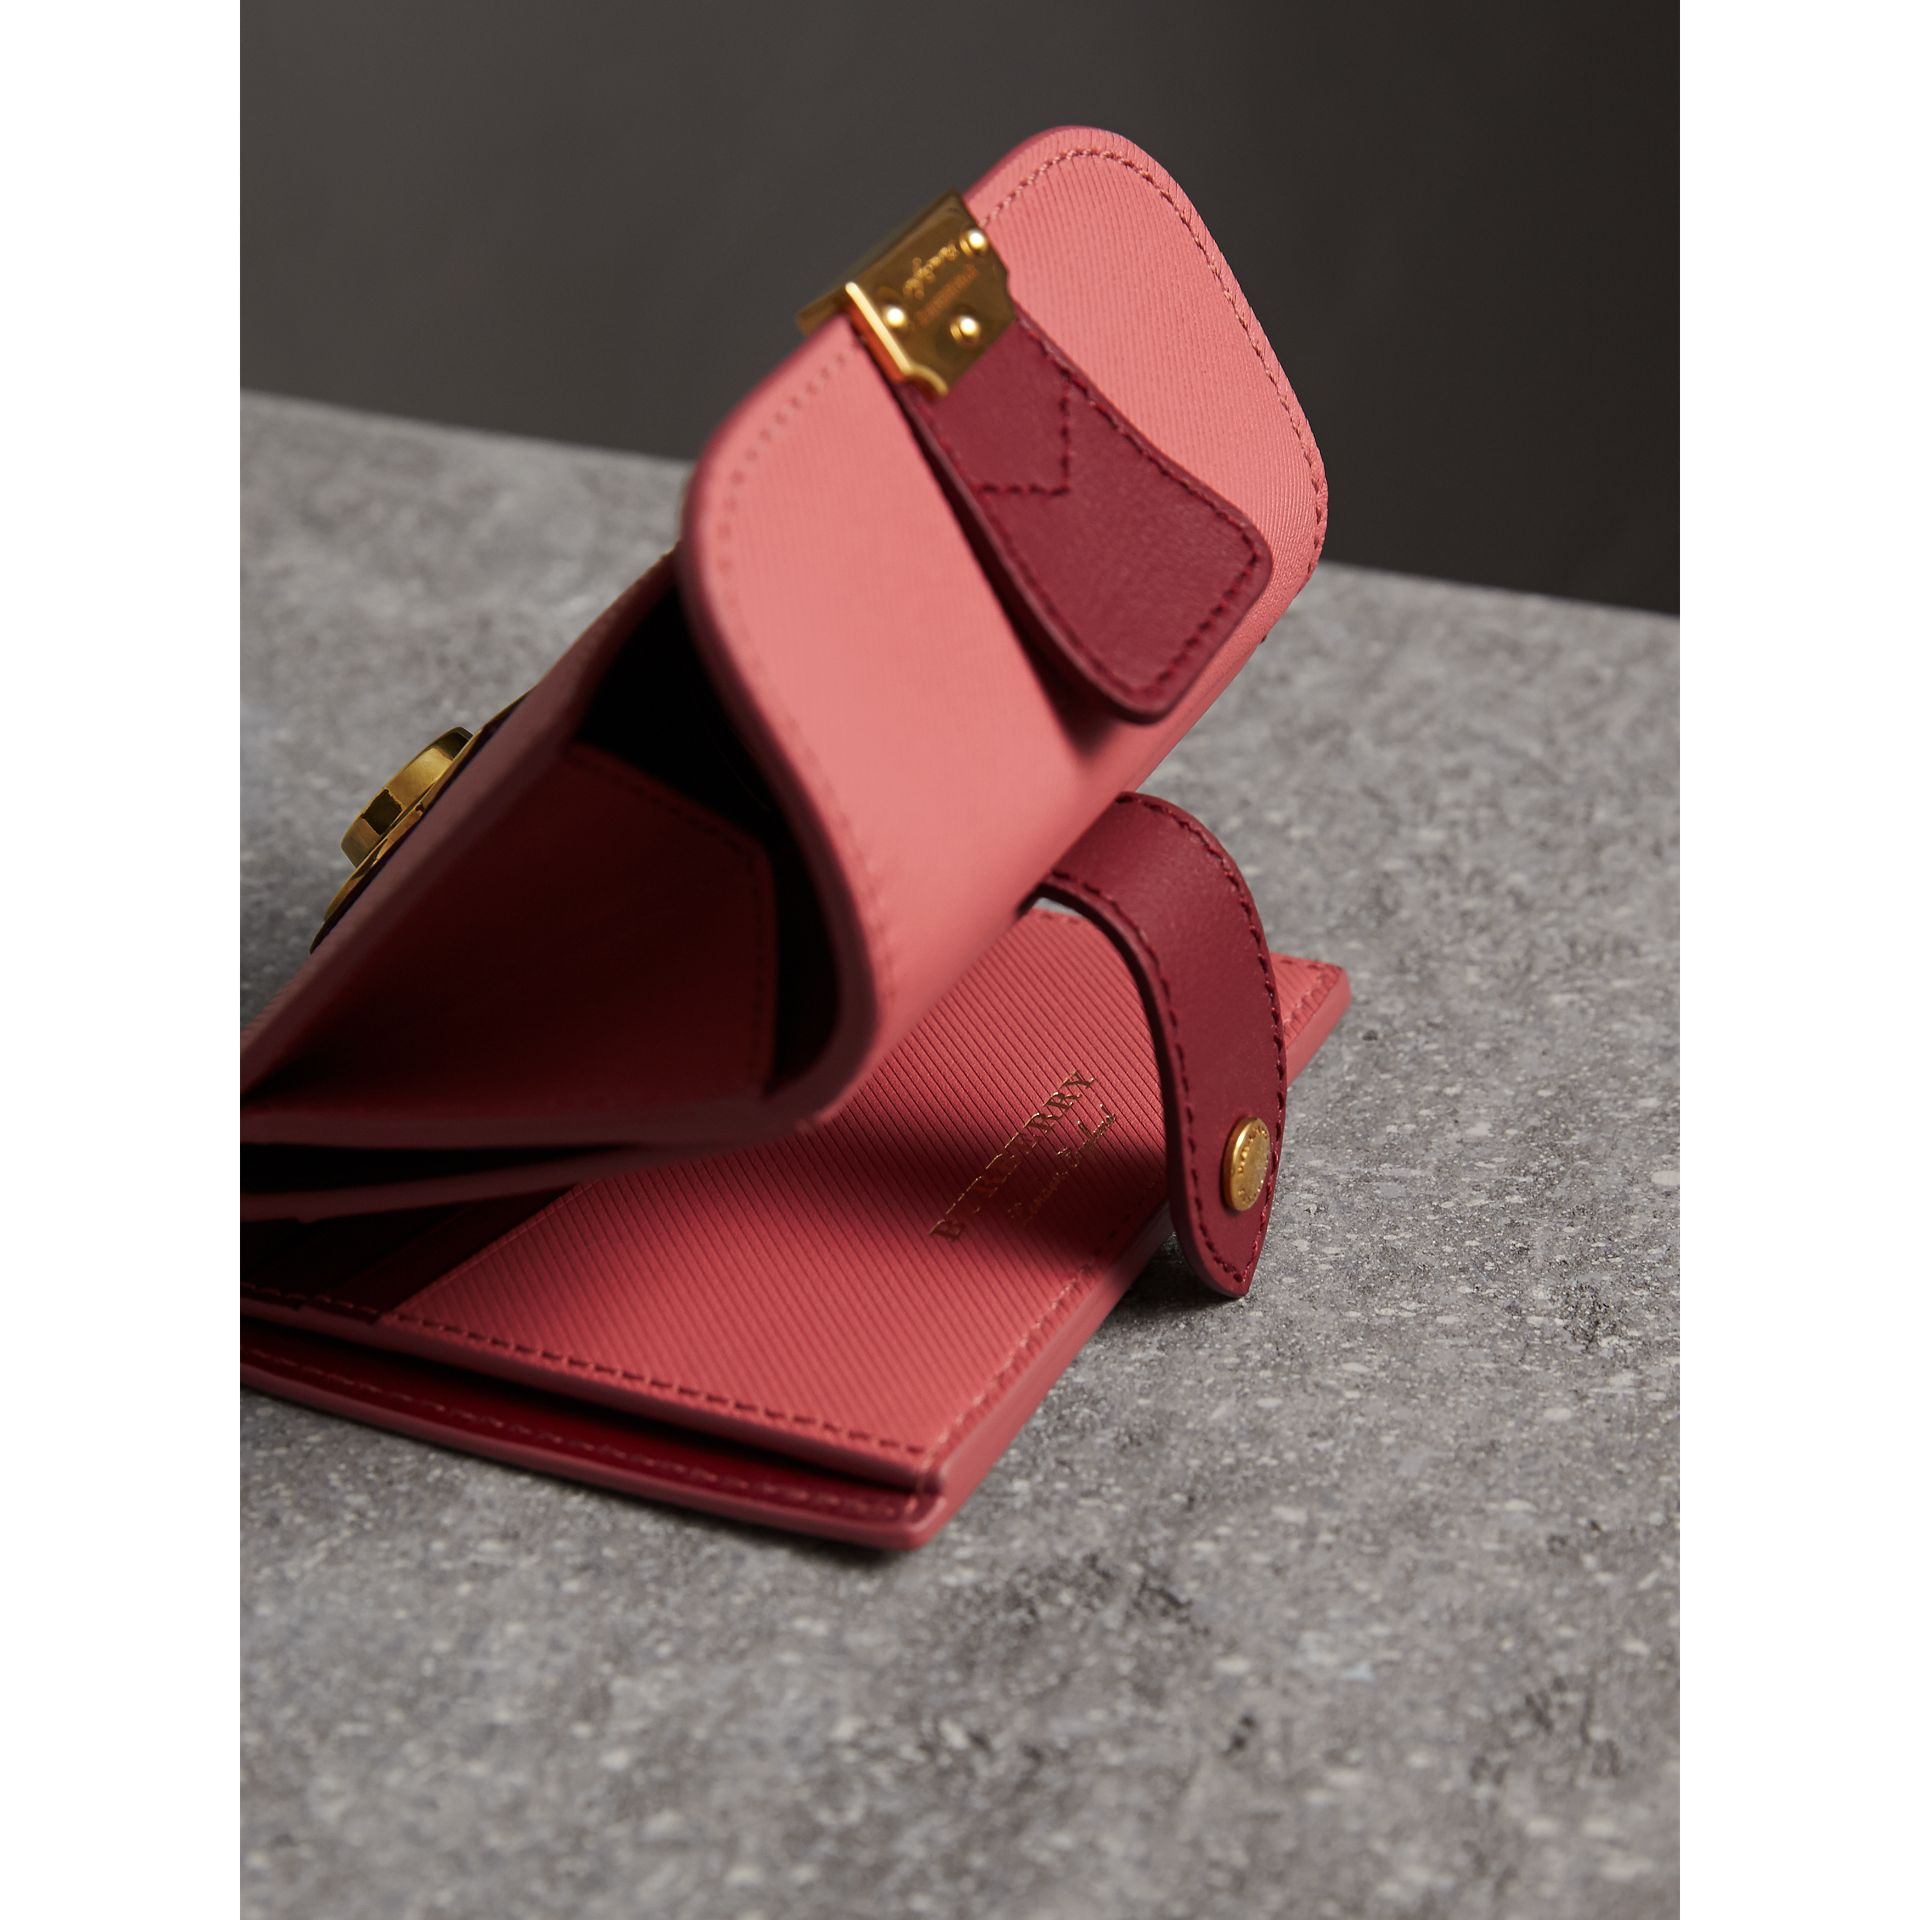 Two-tone Trench Leather Wallet in Blossom Pink/ Antique Red - Women | Burberry - gallery image 3